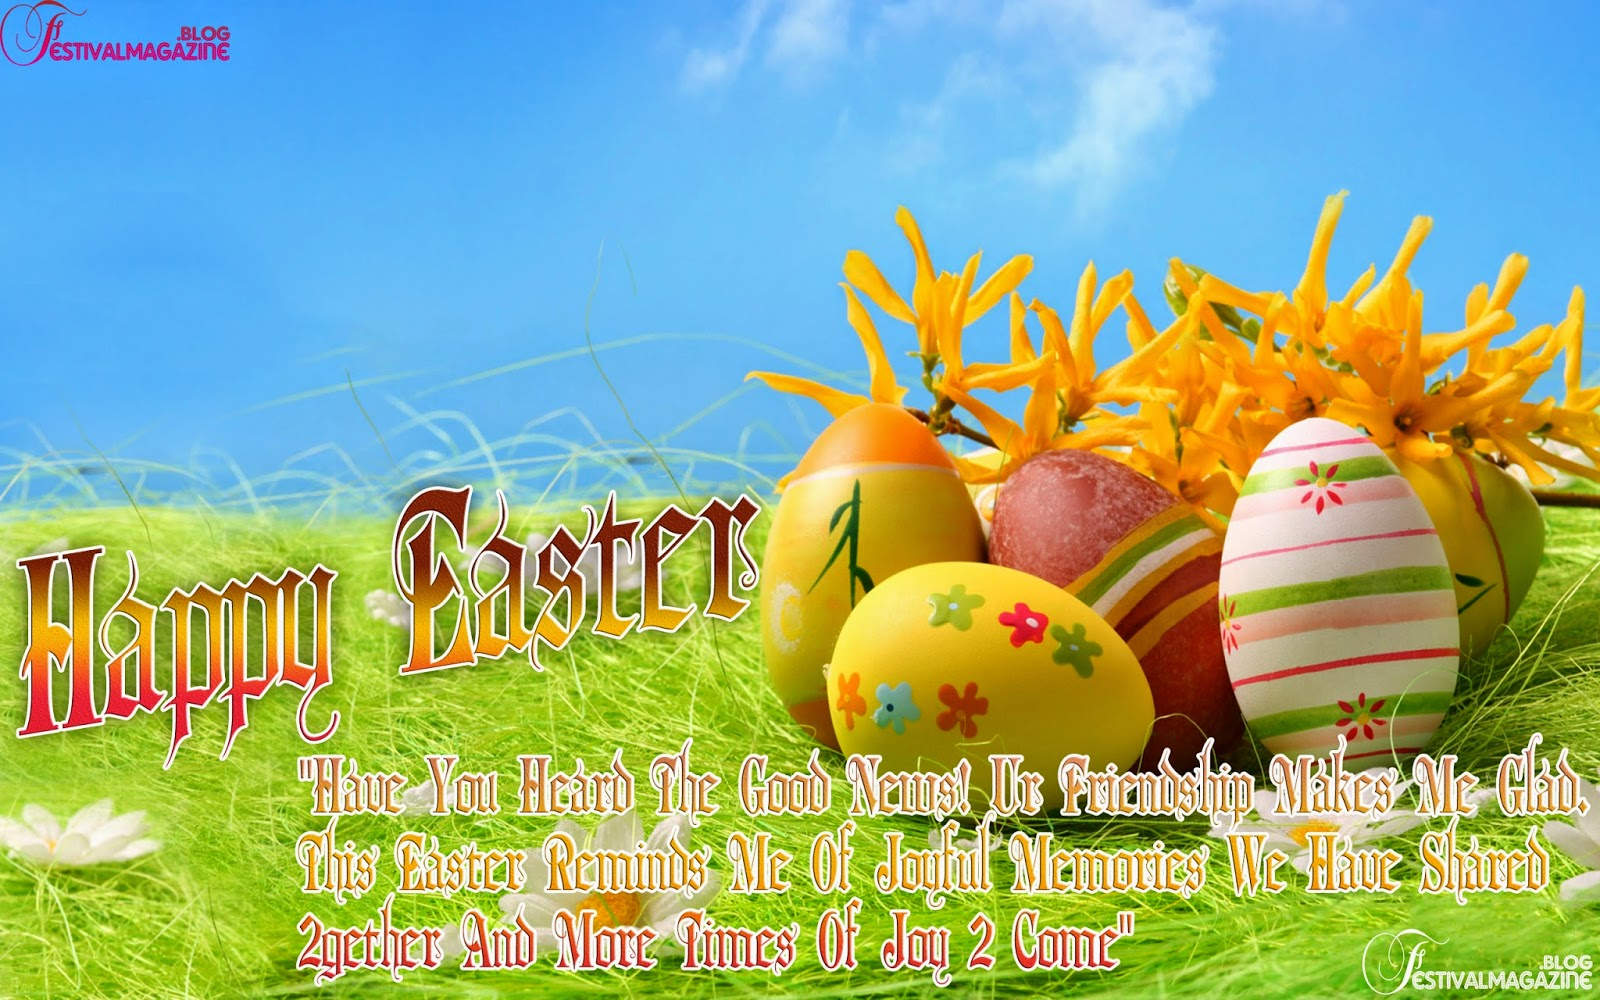 Festival Magazine Happy Easter Day Greeting Quotes Images With